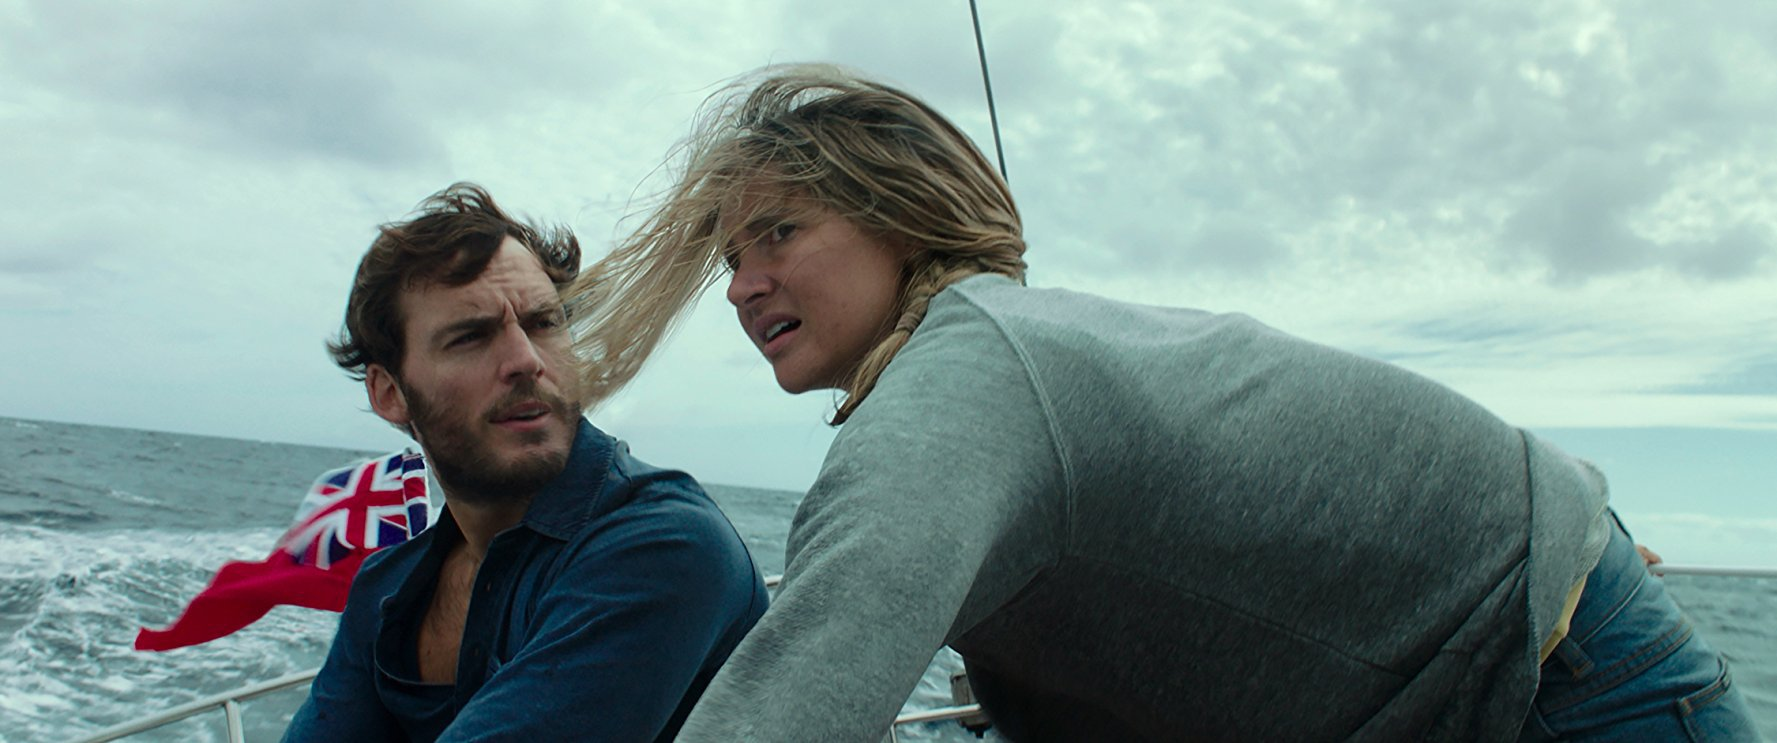 Adrift review: Shailene Woodley steals the show in middling tale of love and survival